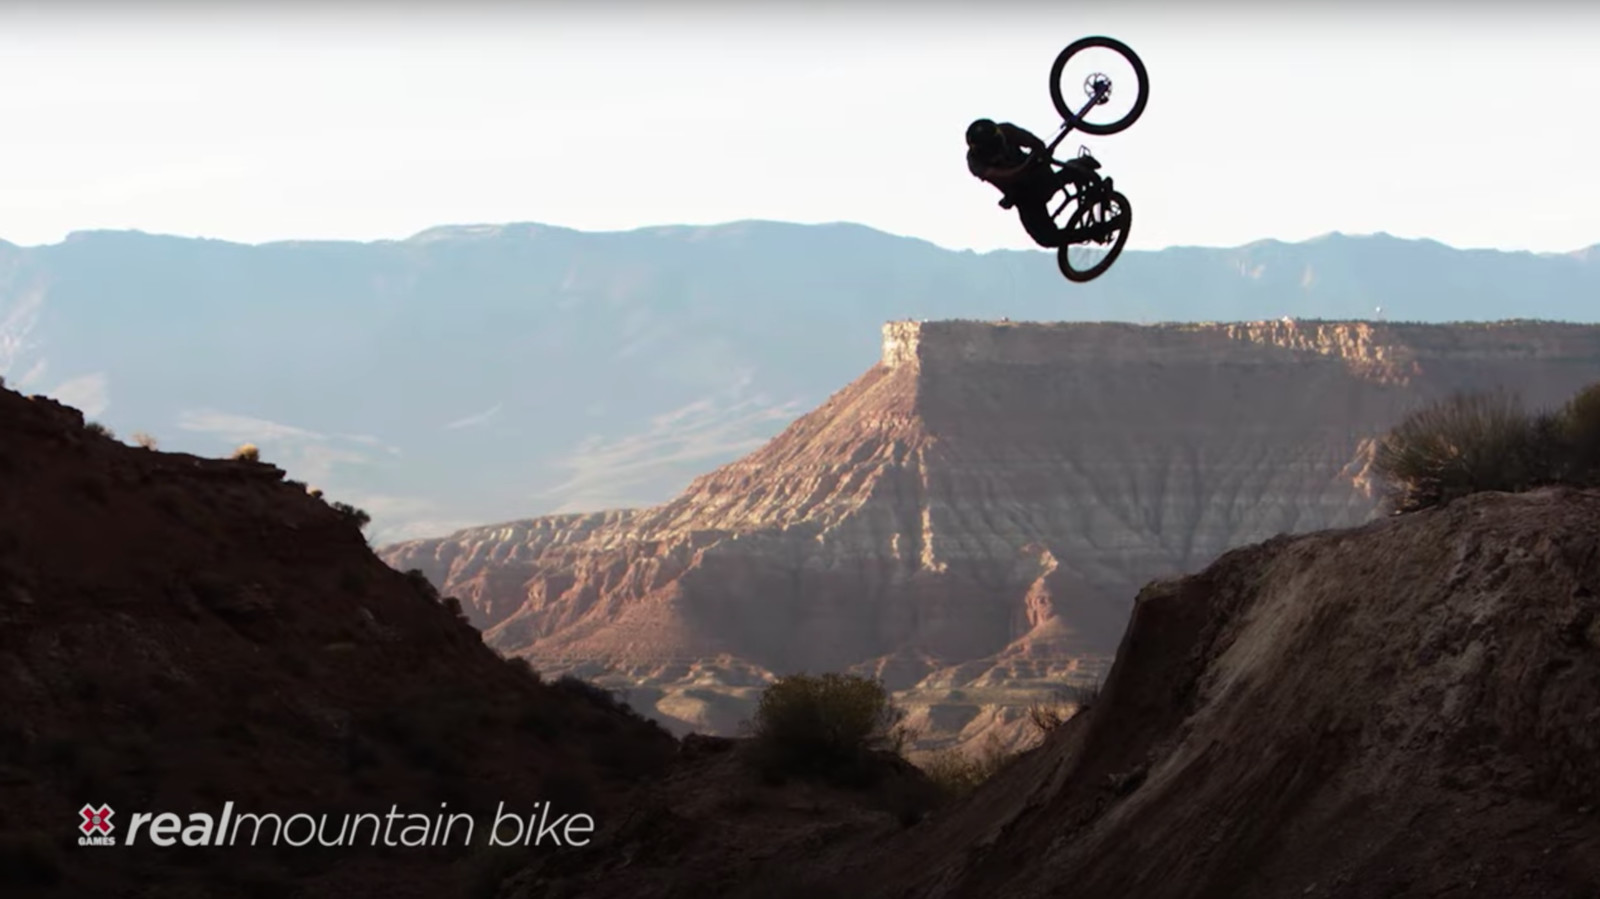 Mountain Biking Returns to the X Games - Real Mountain Bike to be Featured in April 2021